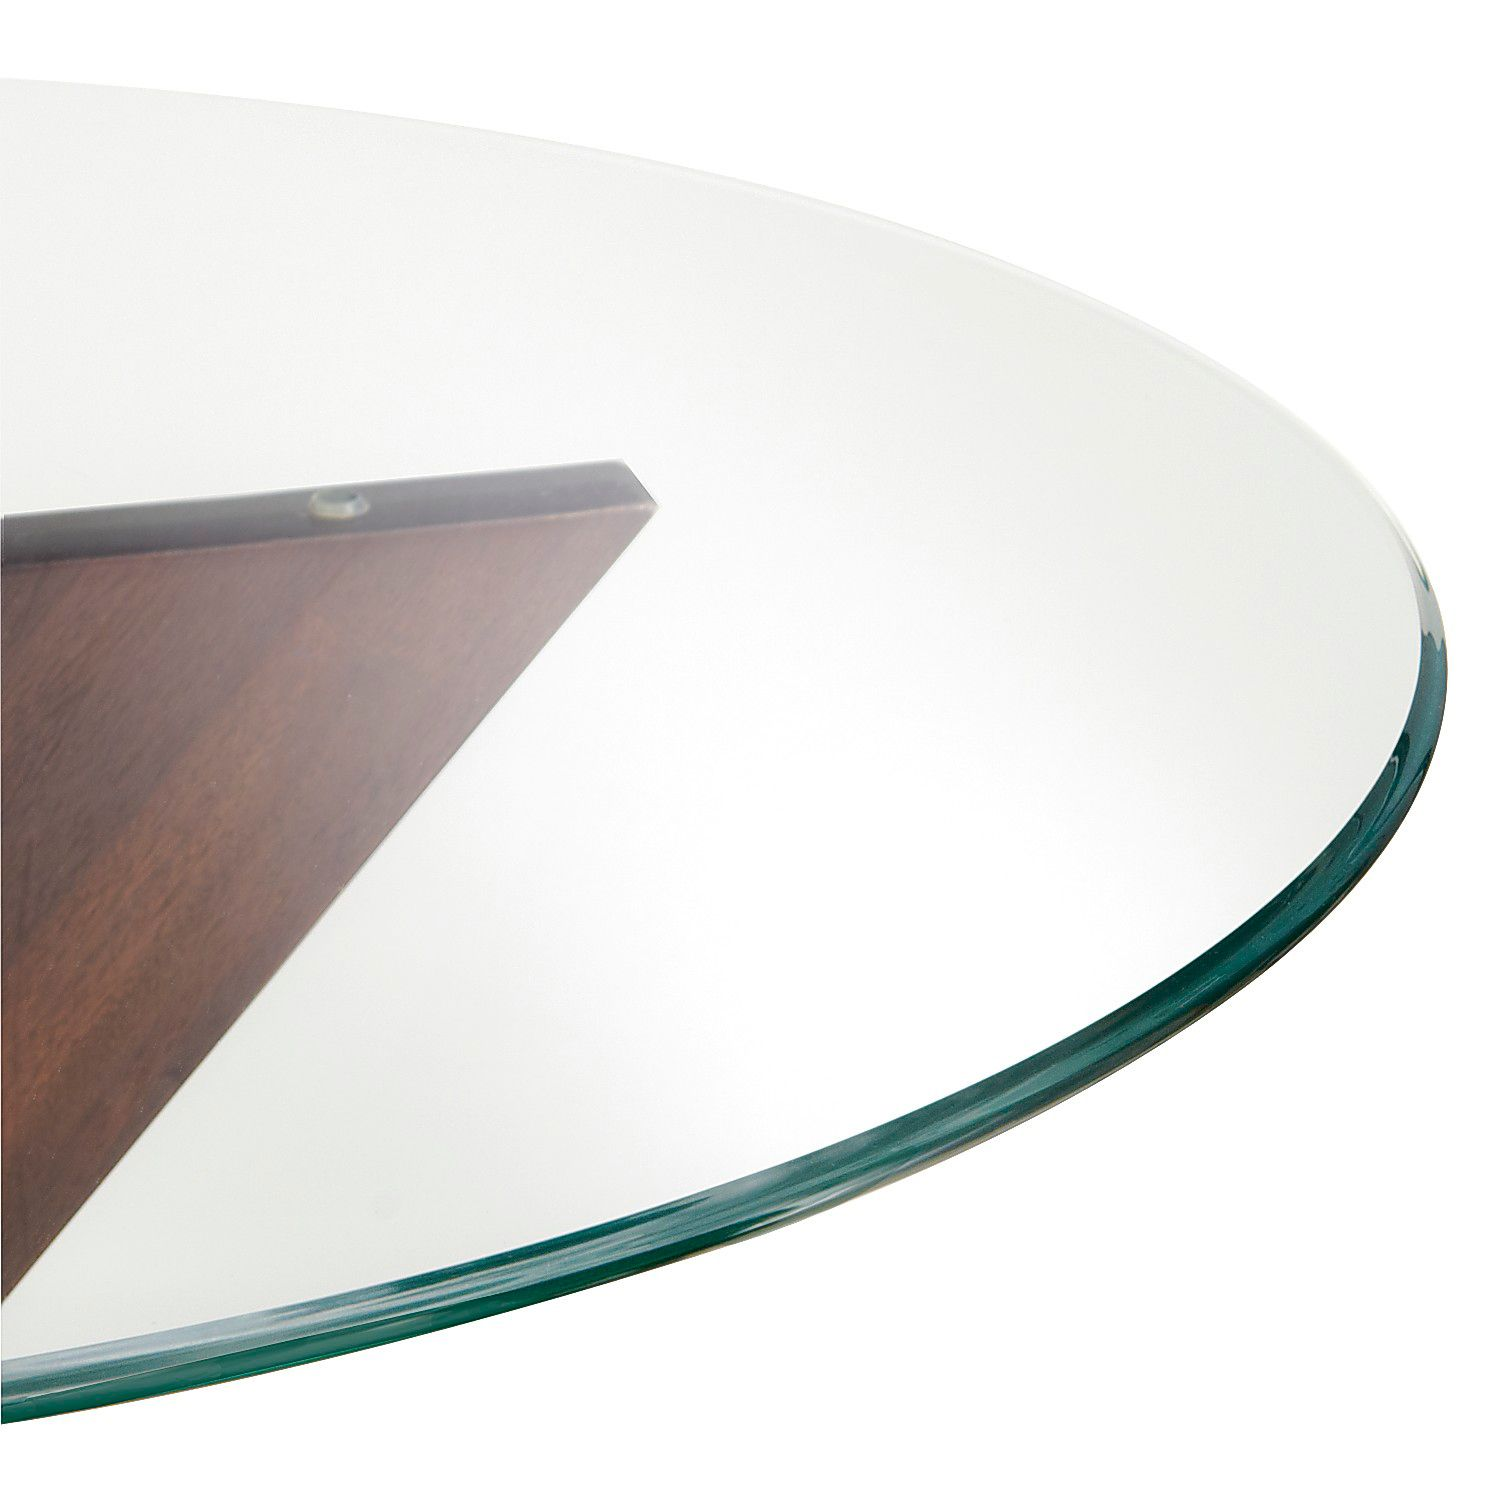 Round Tempered Glass Table Top | Pier 1